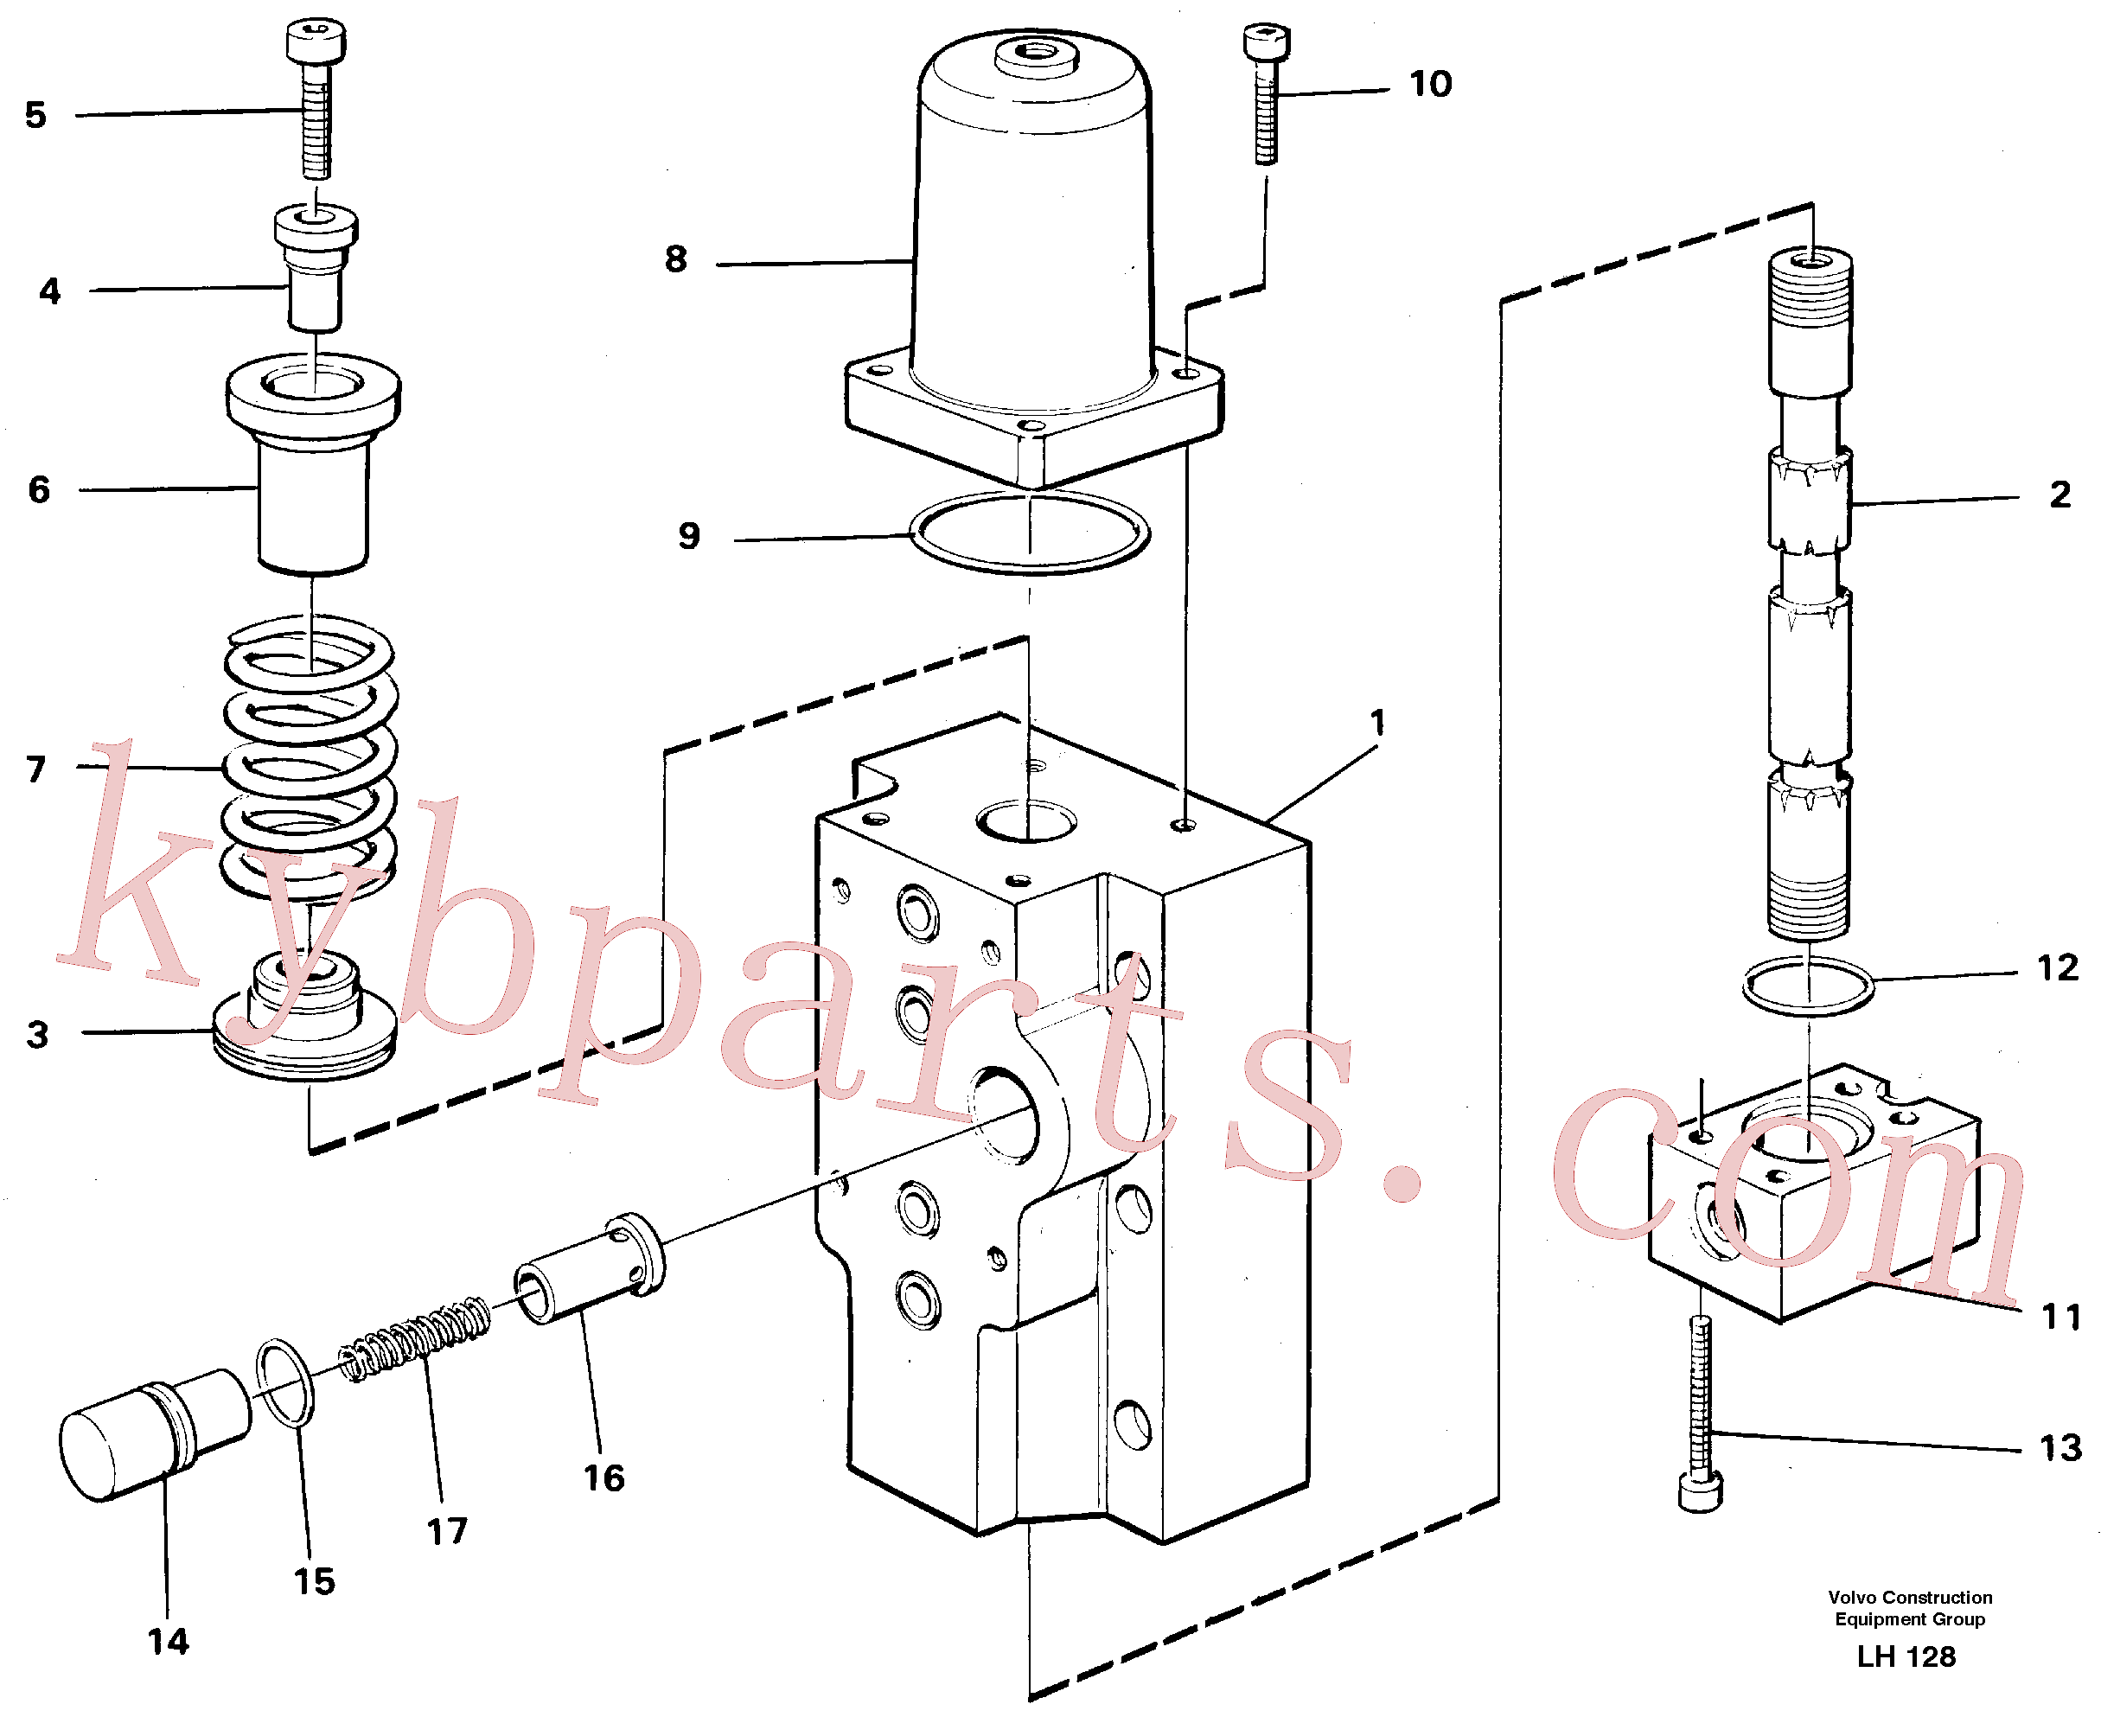 VOE14252112 for Volvo Four-way valves Primary(LH128 assembly)